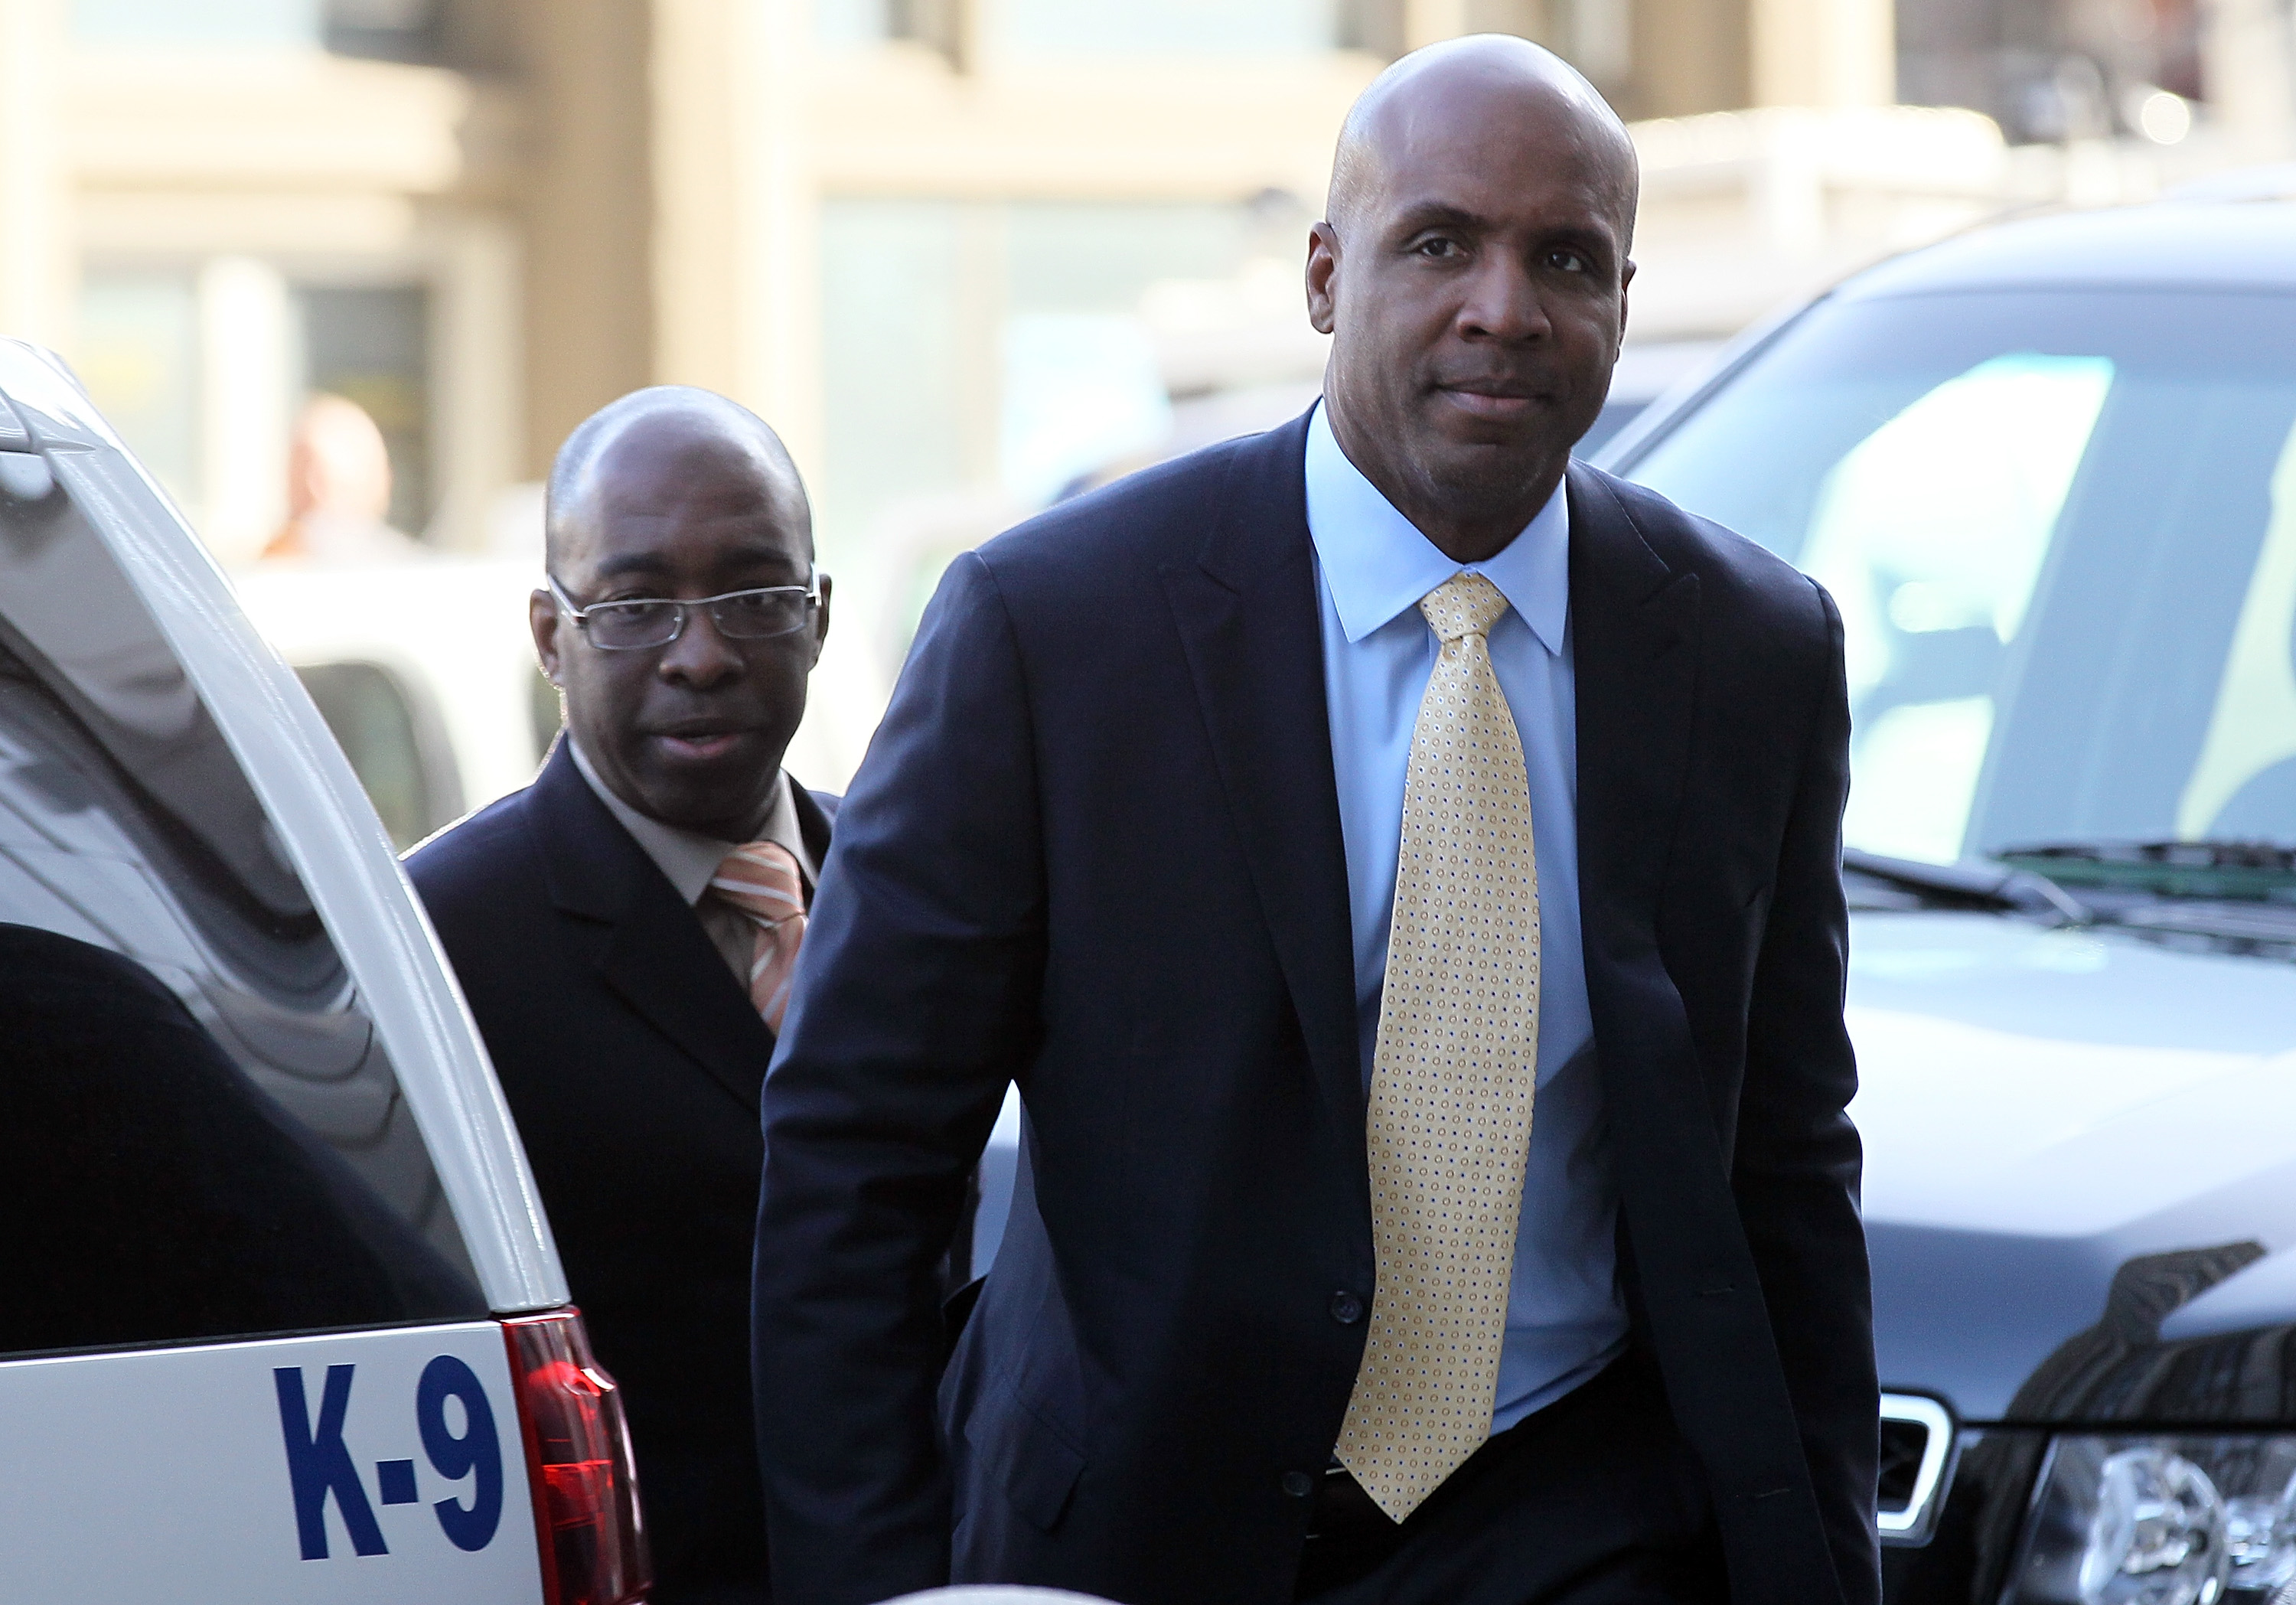 SAN FRANCISCO, CA - APRIL 12:  Former Major League Baseball player Barry Bonds (R) arrives at federal court on April 12, 2011 in San Francisco, California.  The jury is deliberating for the third day in the Barry Bonds perjury trial where the former baseb